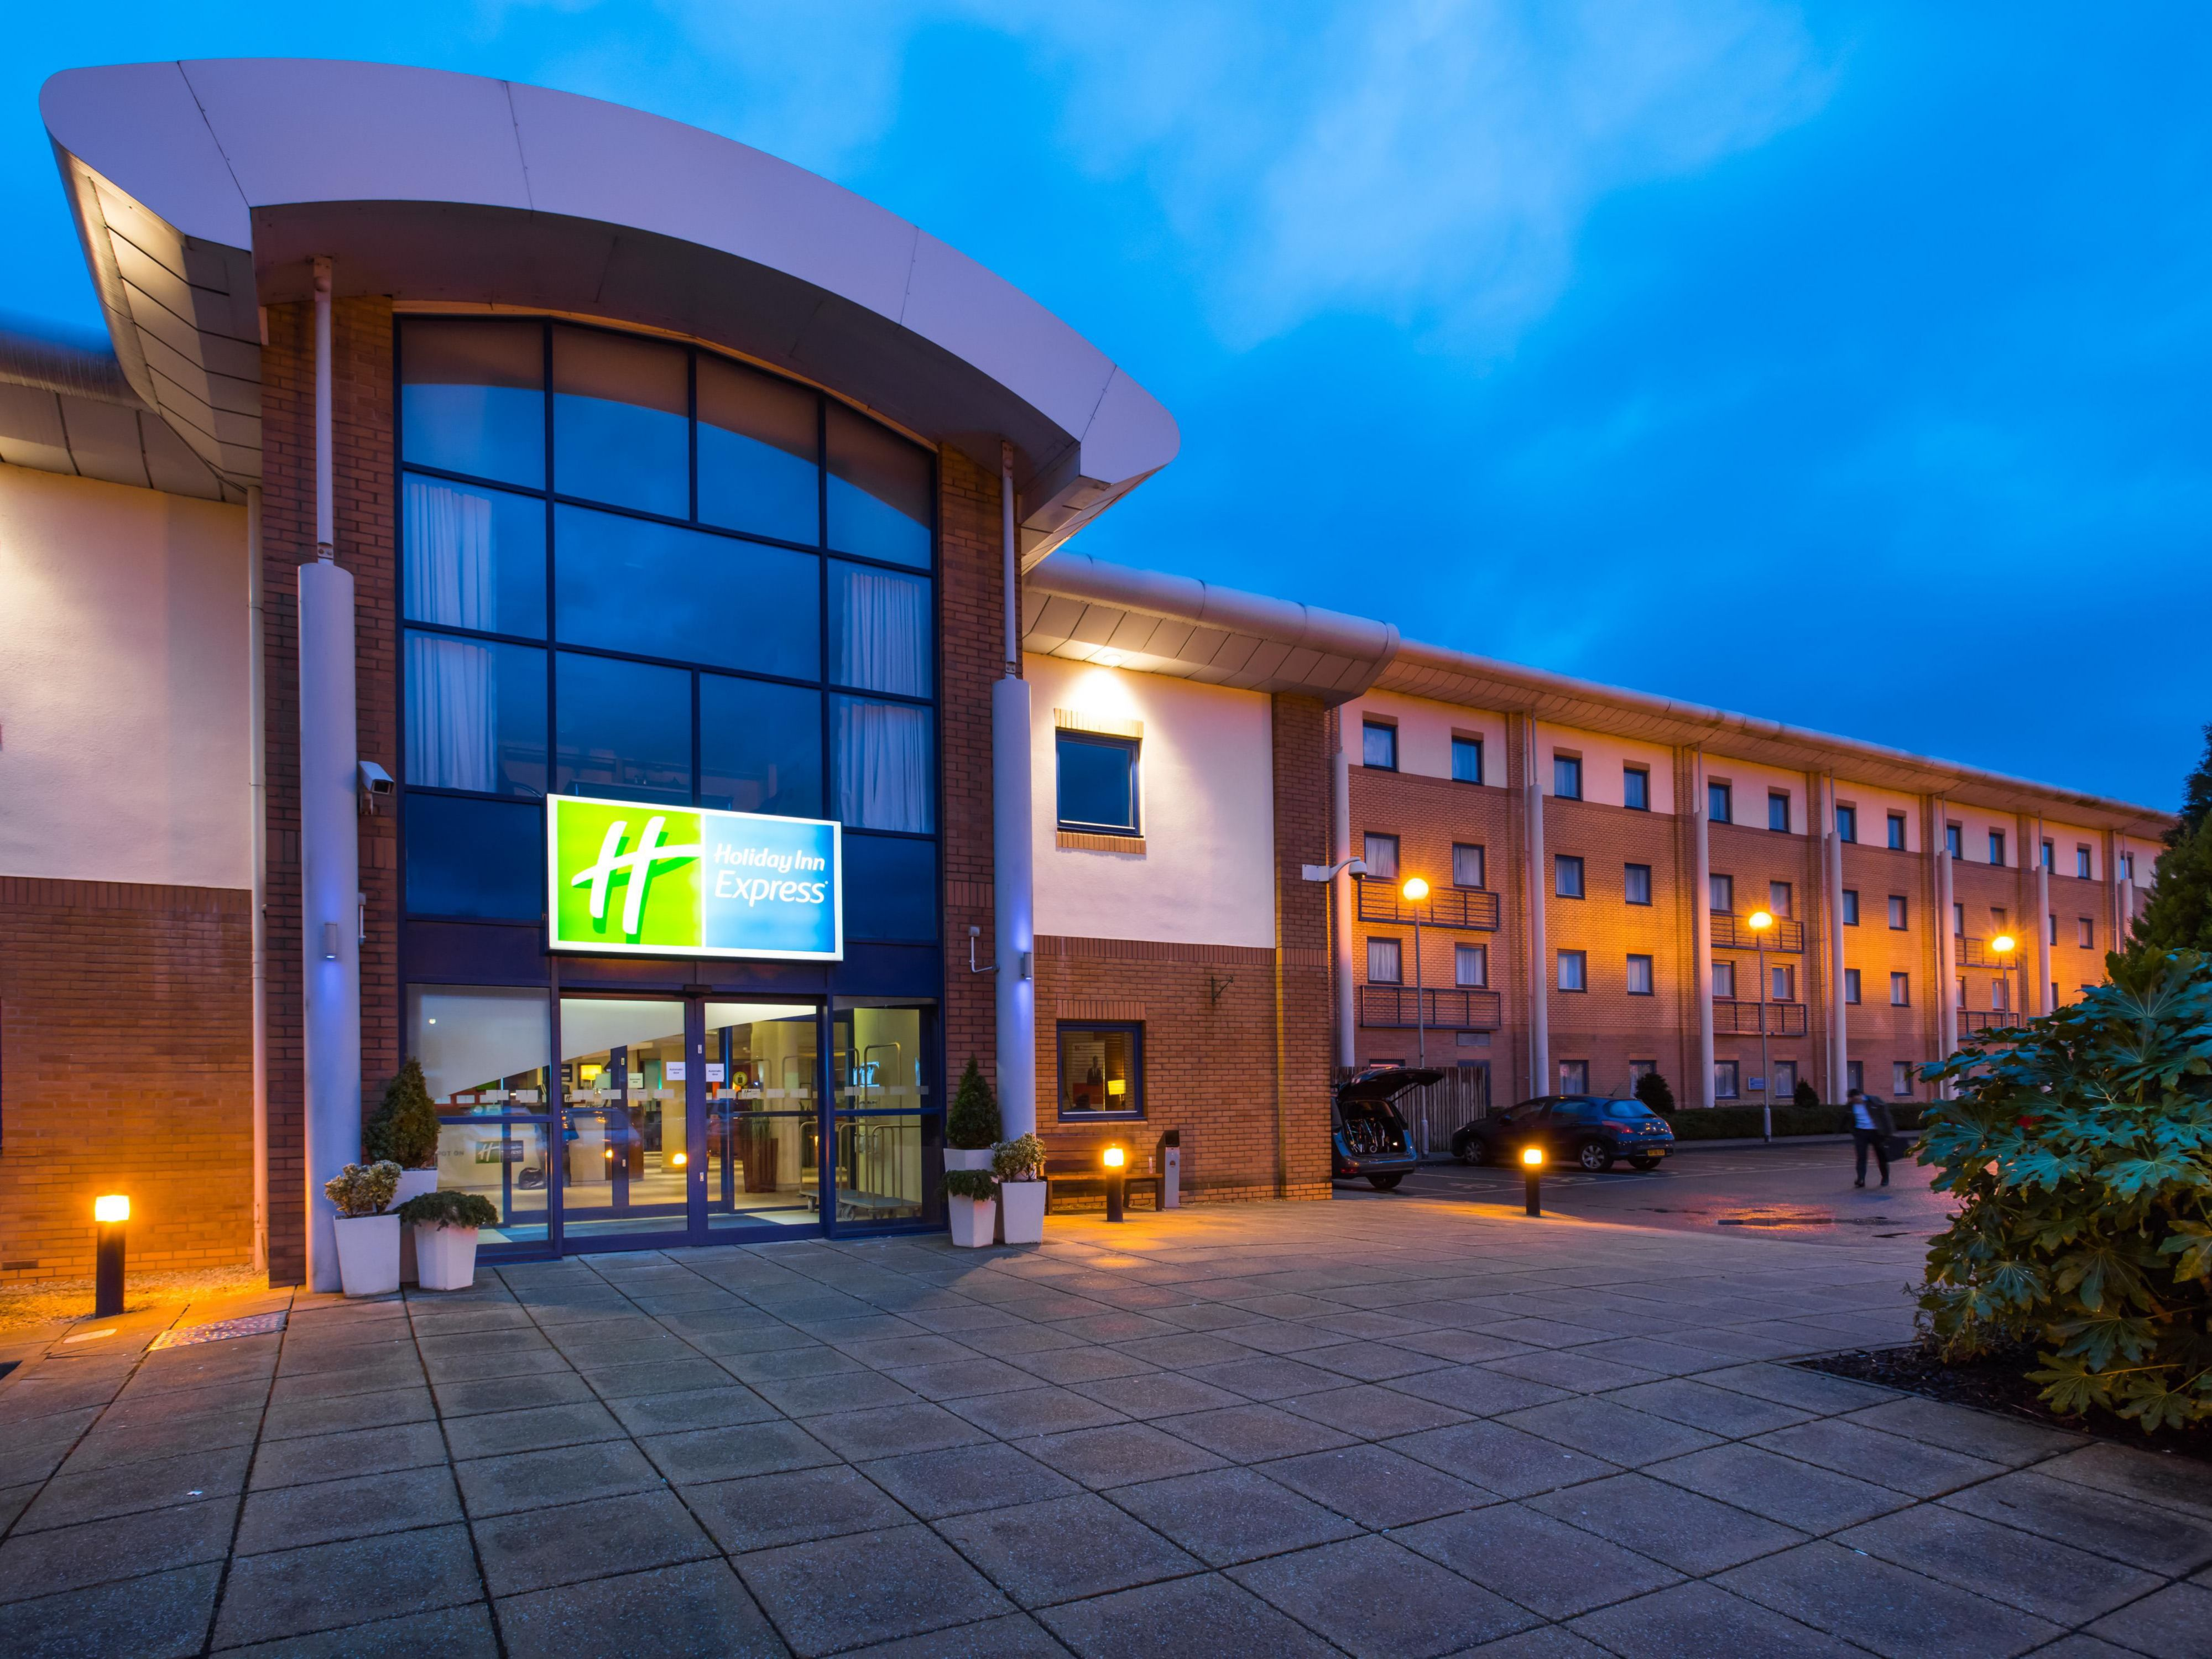 Enjoy great value accommodation in Wales at our hotel in Newport